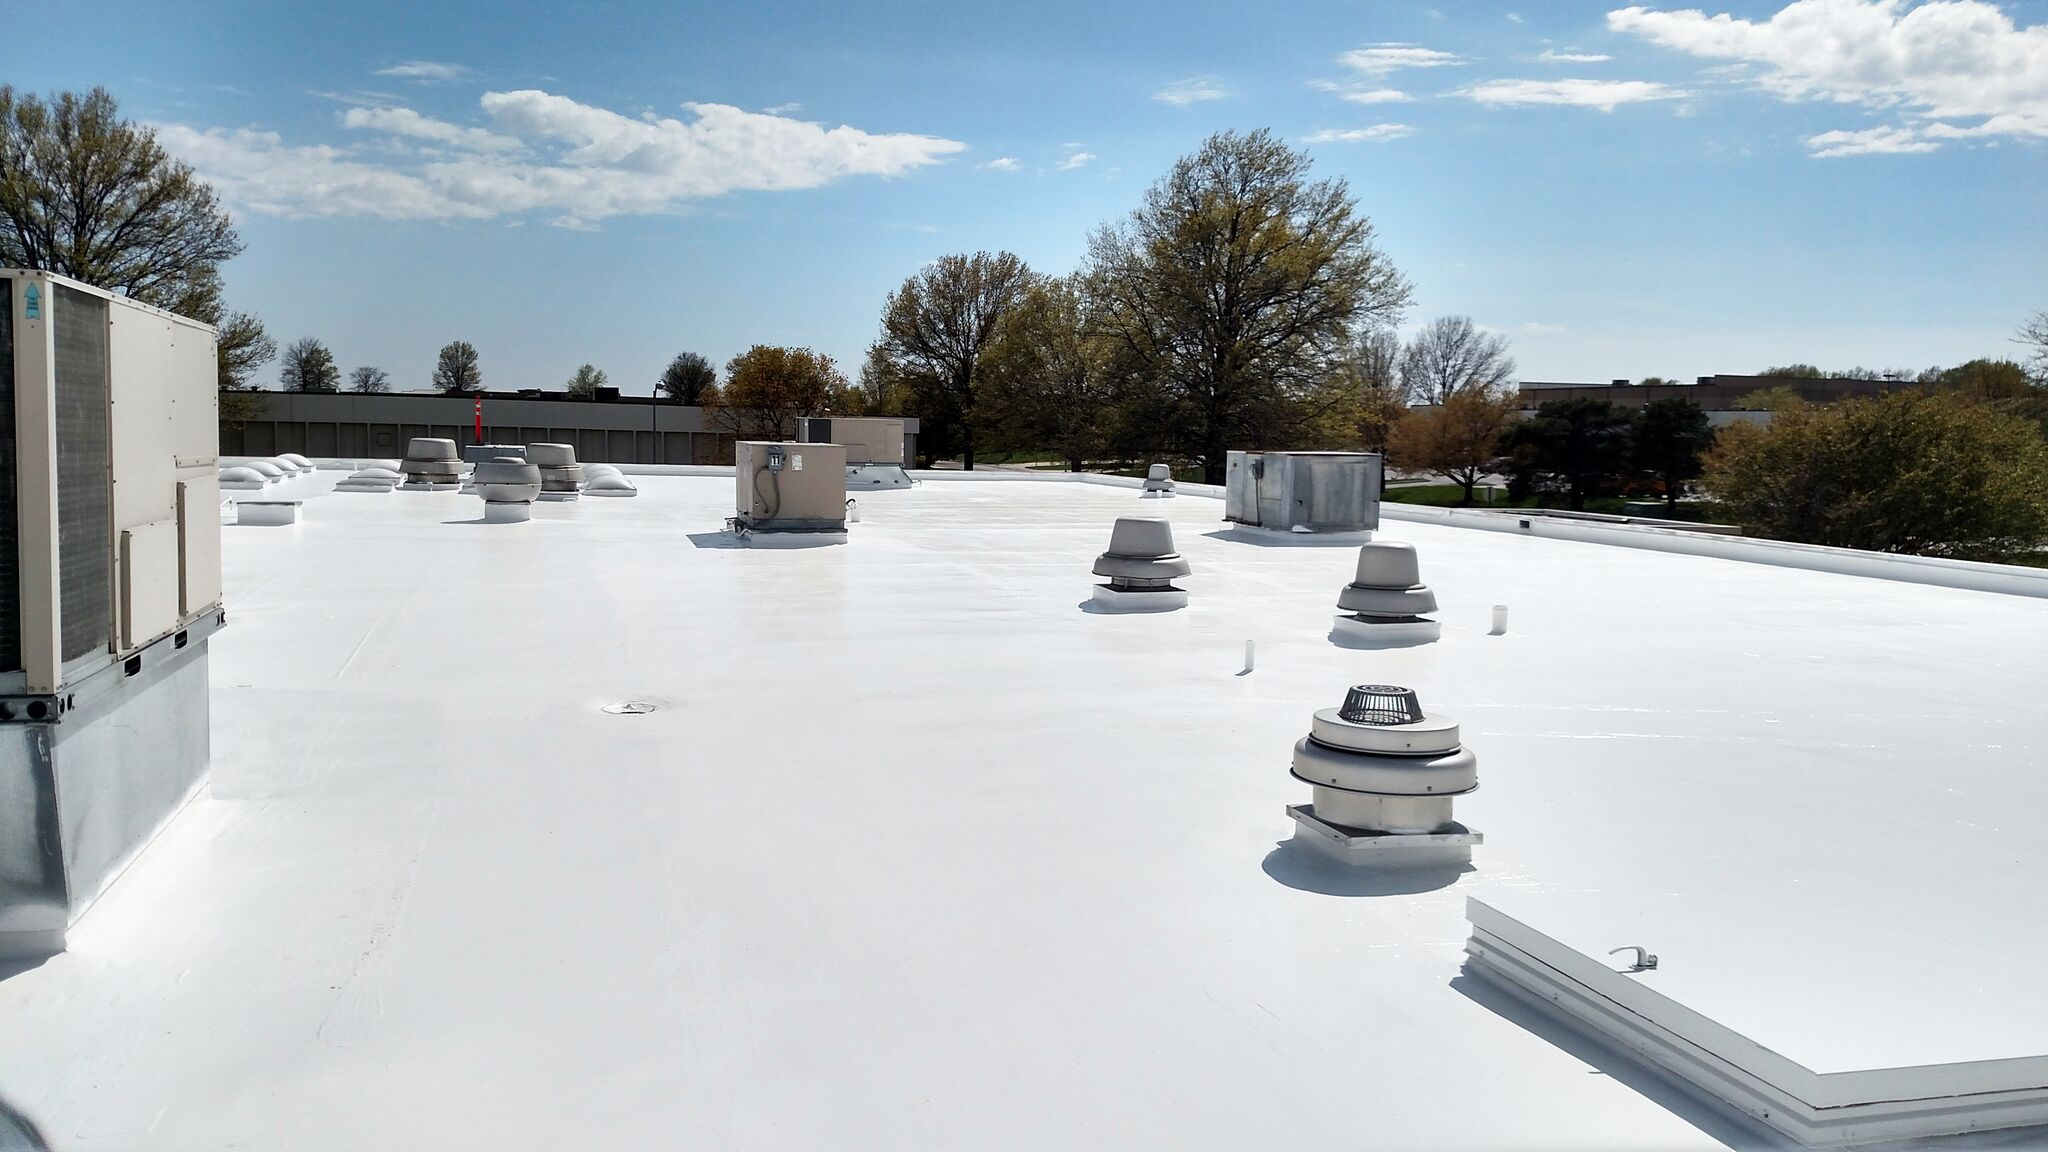 Thereu0027s No Need To Tear Off And Replace Your Weathered And Leaking Roof. By  Re Covering Your Roof You Save On Labor Costs And Avoid Landfill Expenses,  ...